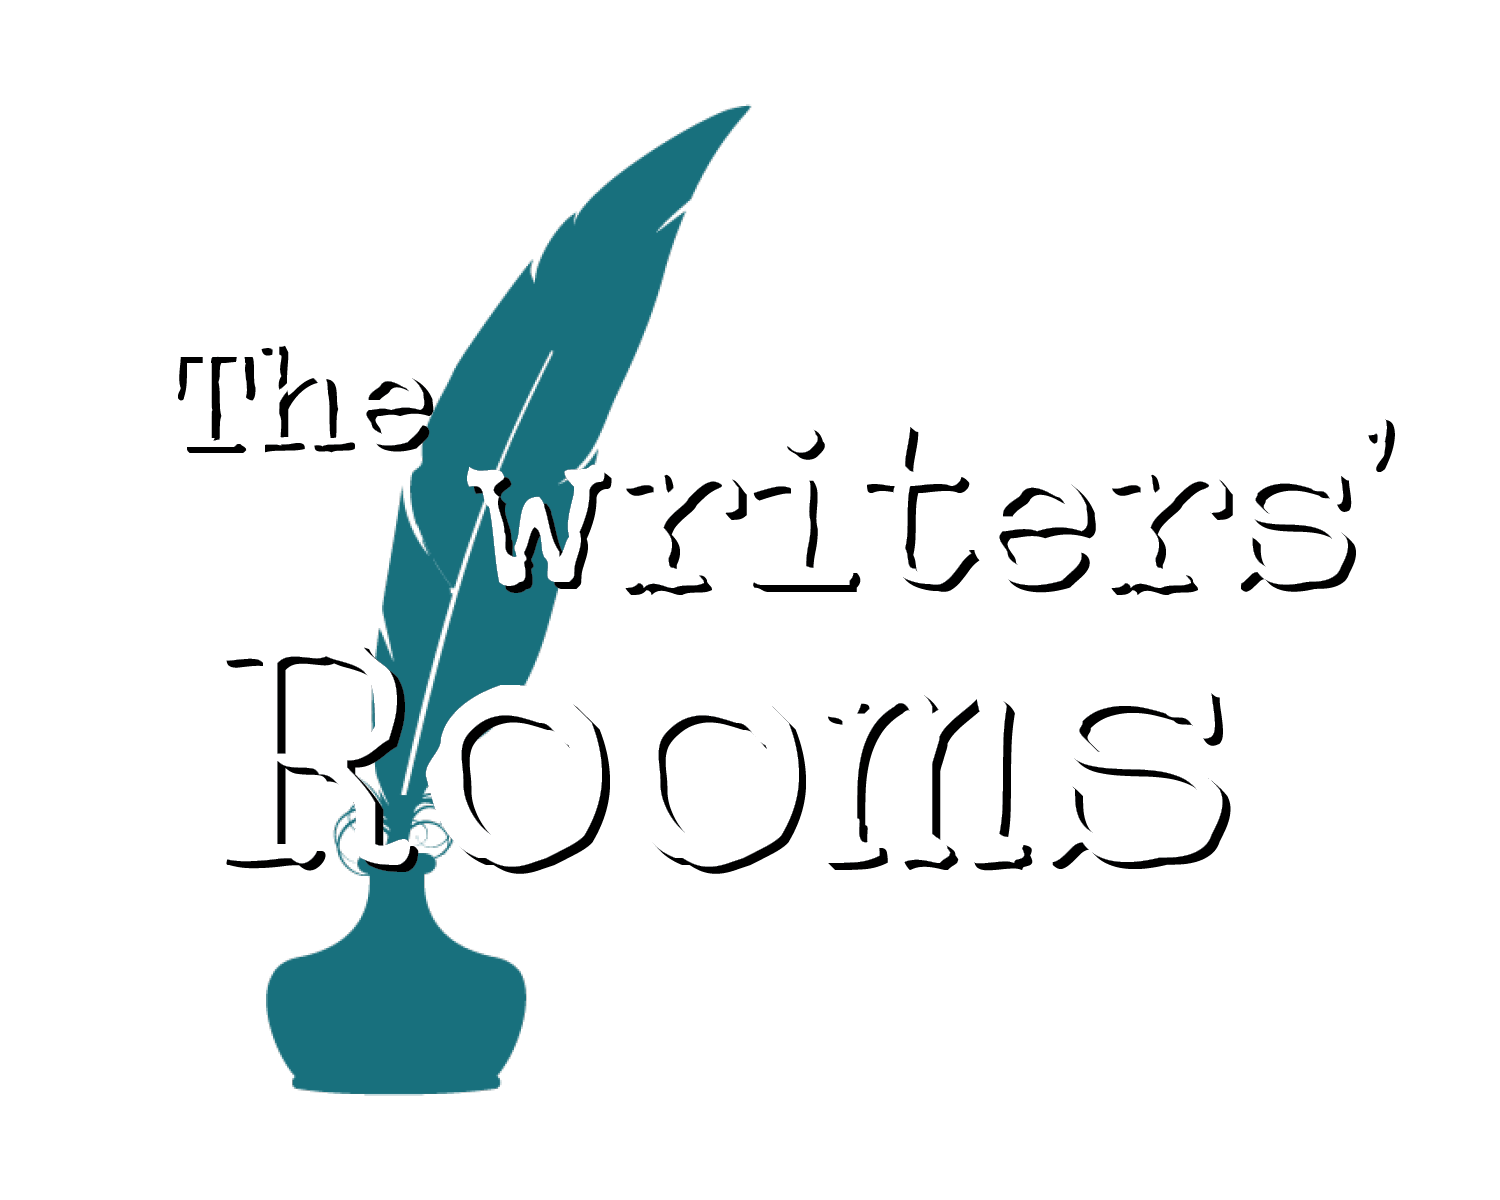 The Writers' Rooms